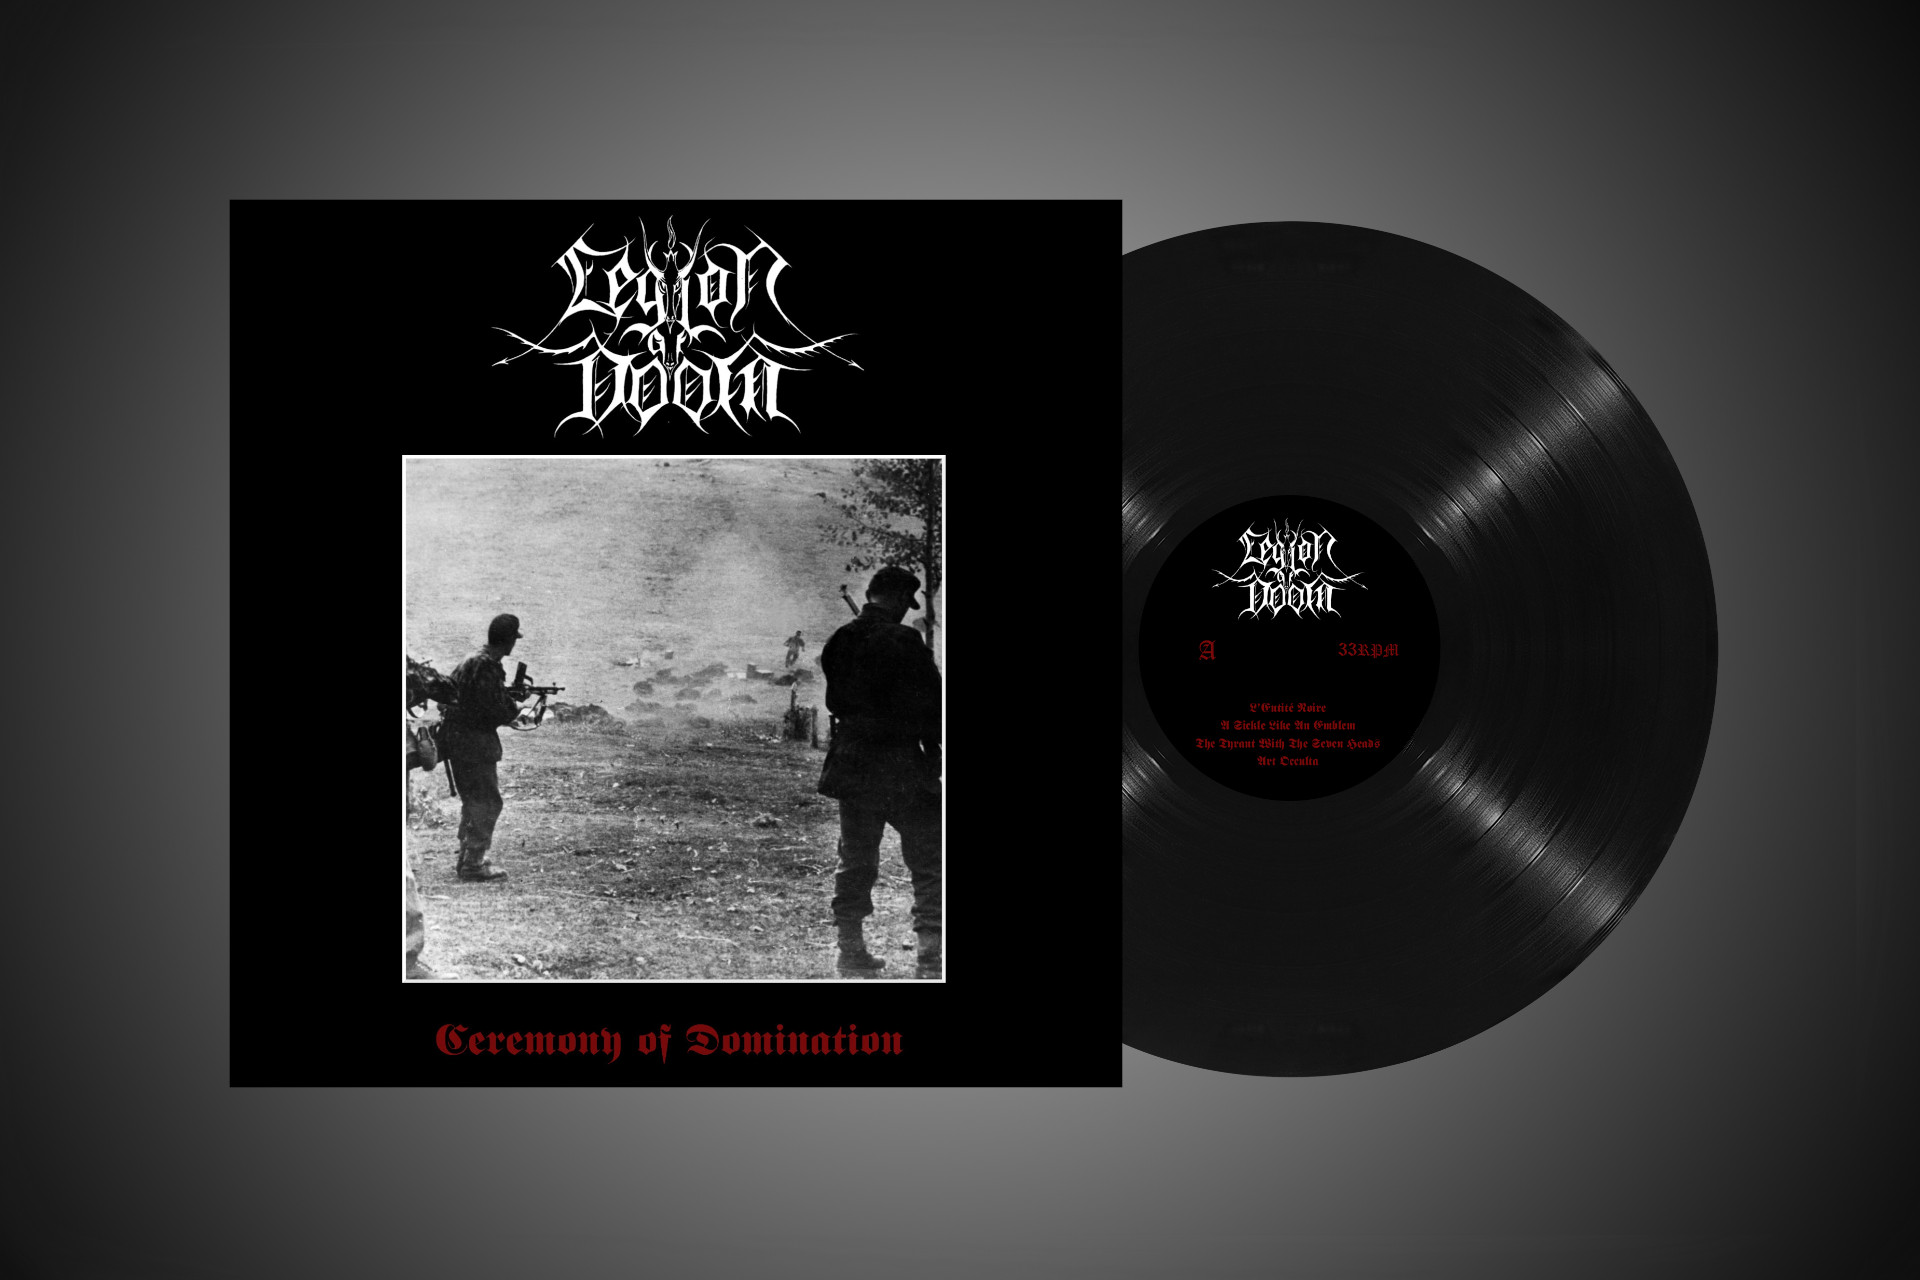 Legion of Doom – Ceremony of Domination